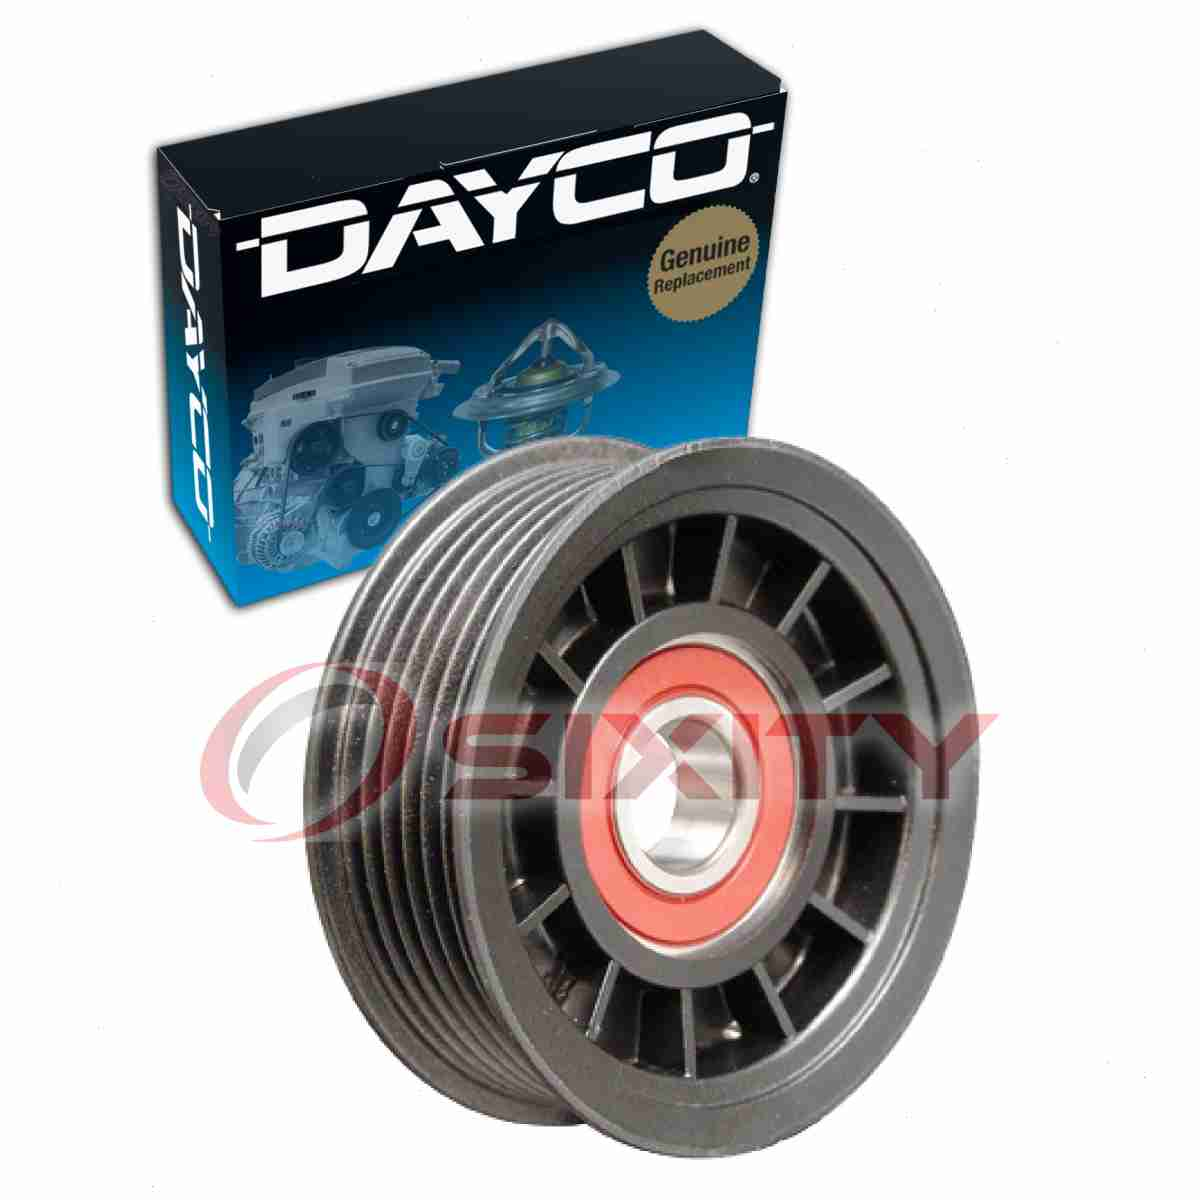 dayco grooved drive belt pulley for 1999 2010 jeep grand cherokee this jeep grand cherokee belt diagram is for model year 2005 with v6 3 [ 1200 x 1200 Pixel ]